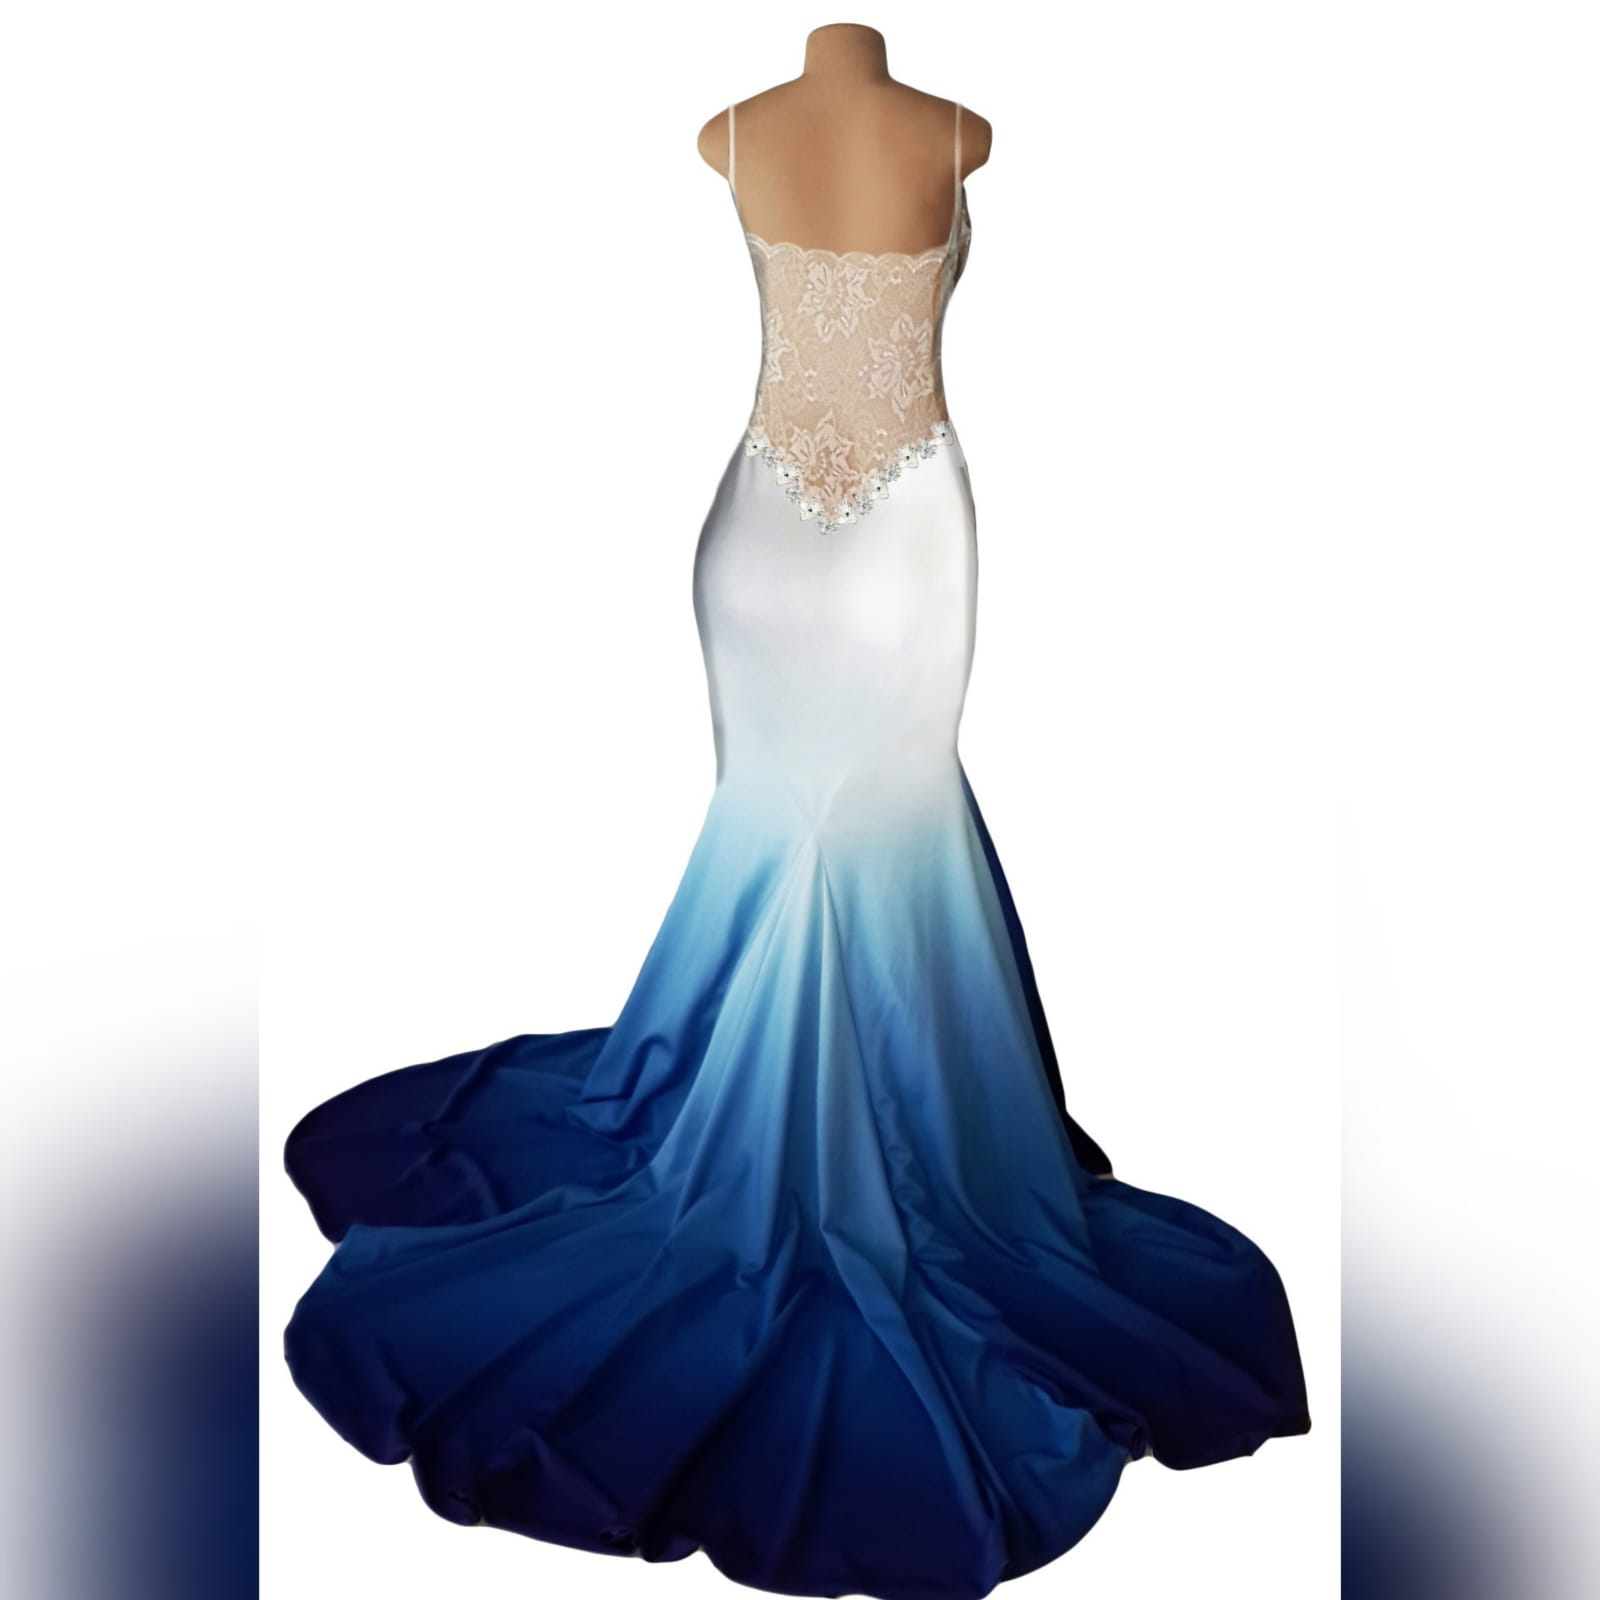 White & blue ombre soft mermaid prom dress with a sheer lace back 5 white & blue ombre soft mermaid prom dress with a sheer lace back. A sweetheart neckline. With a touch of silver beads and a train